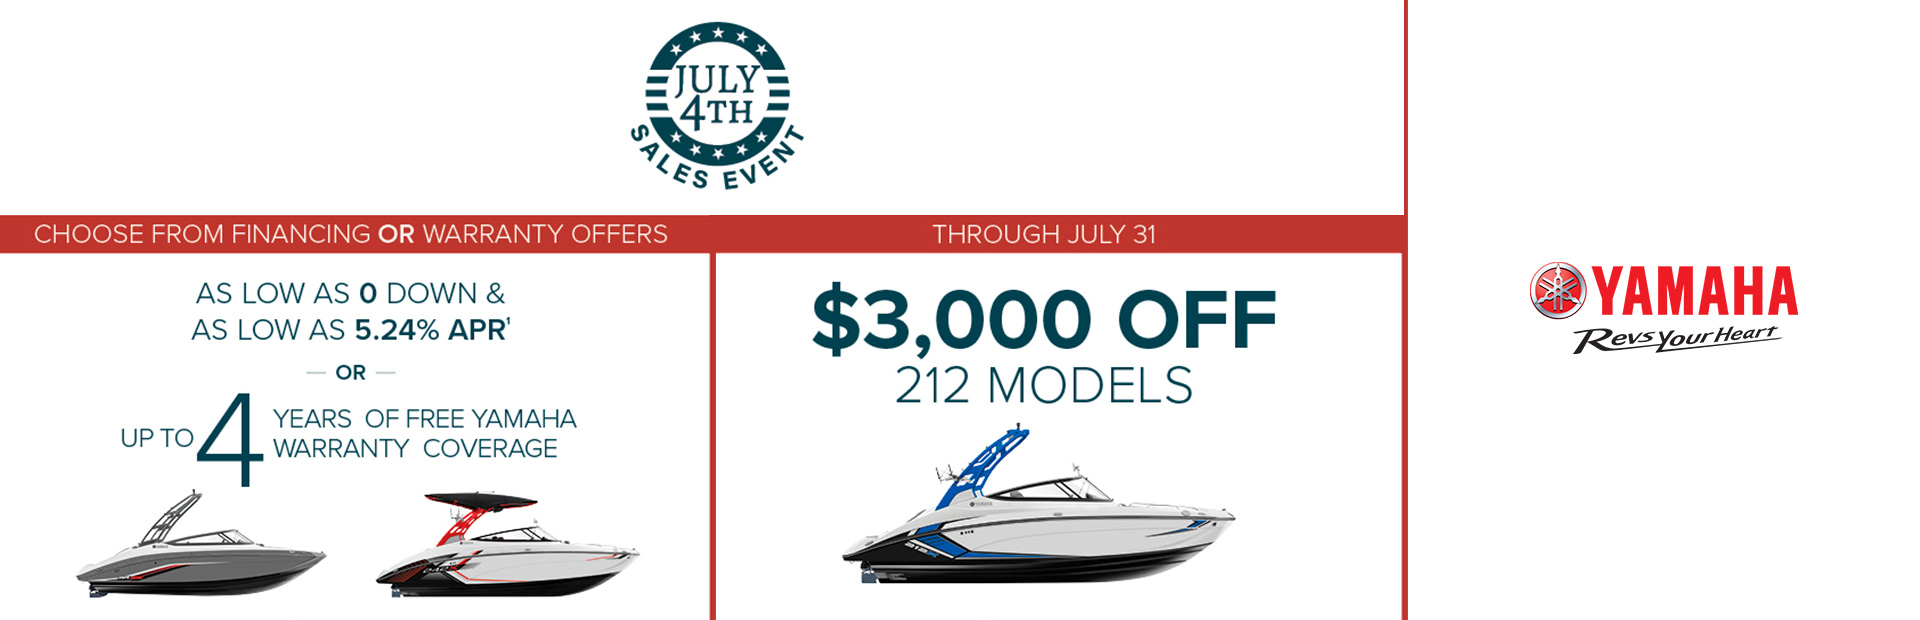 Yamaha: July 4th Sales Event